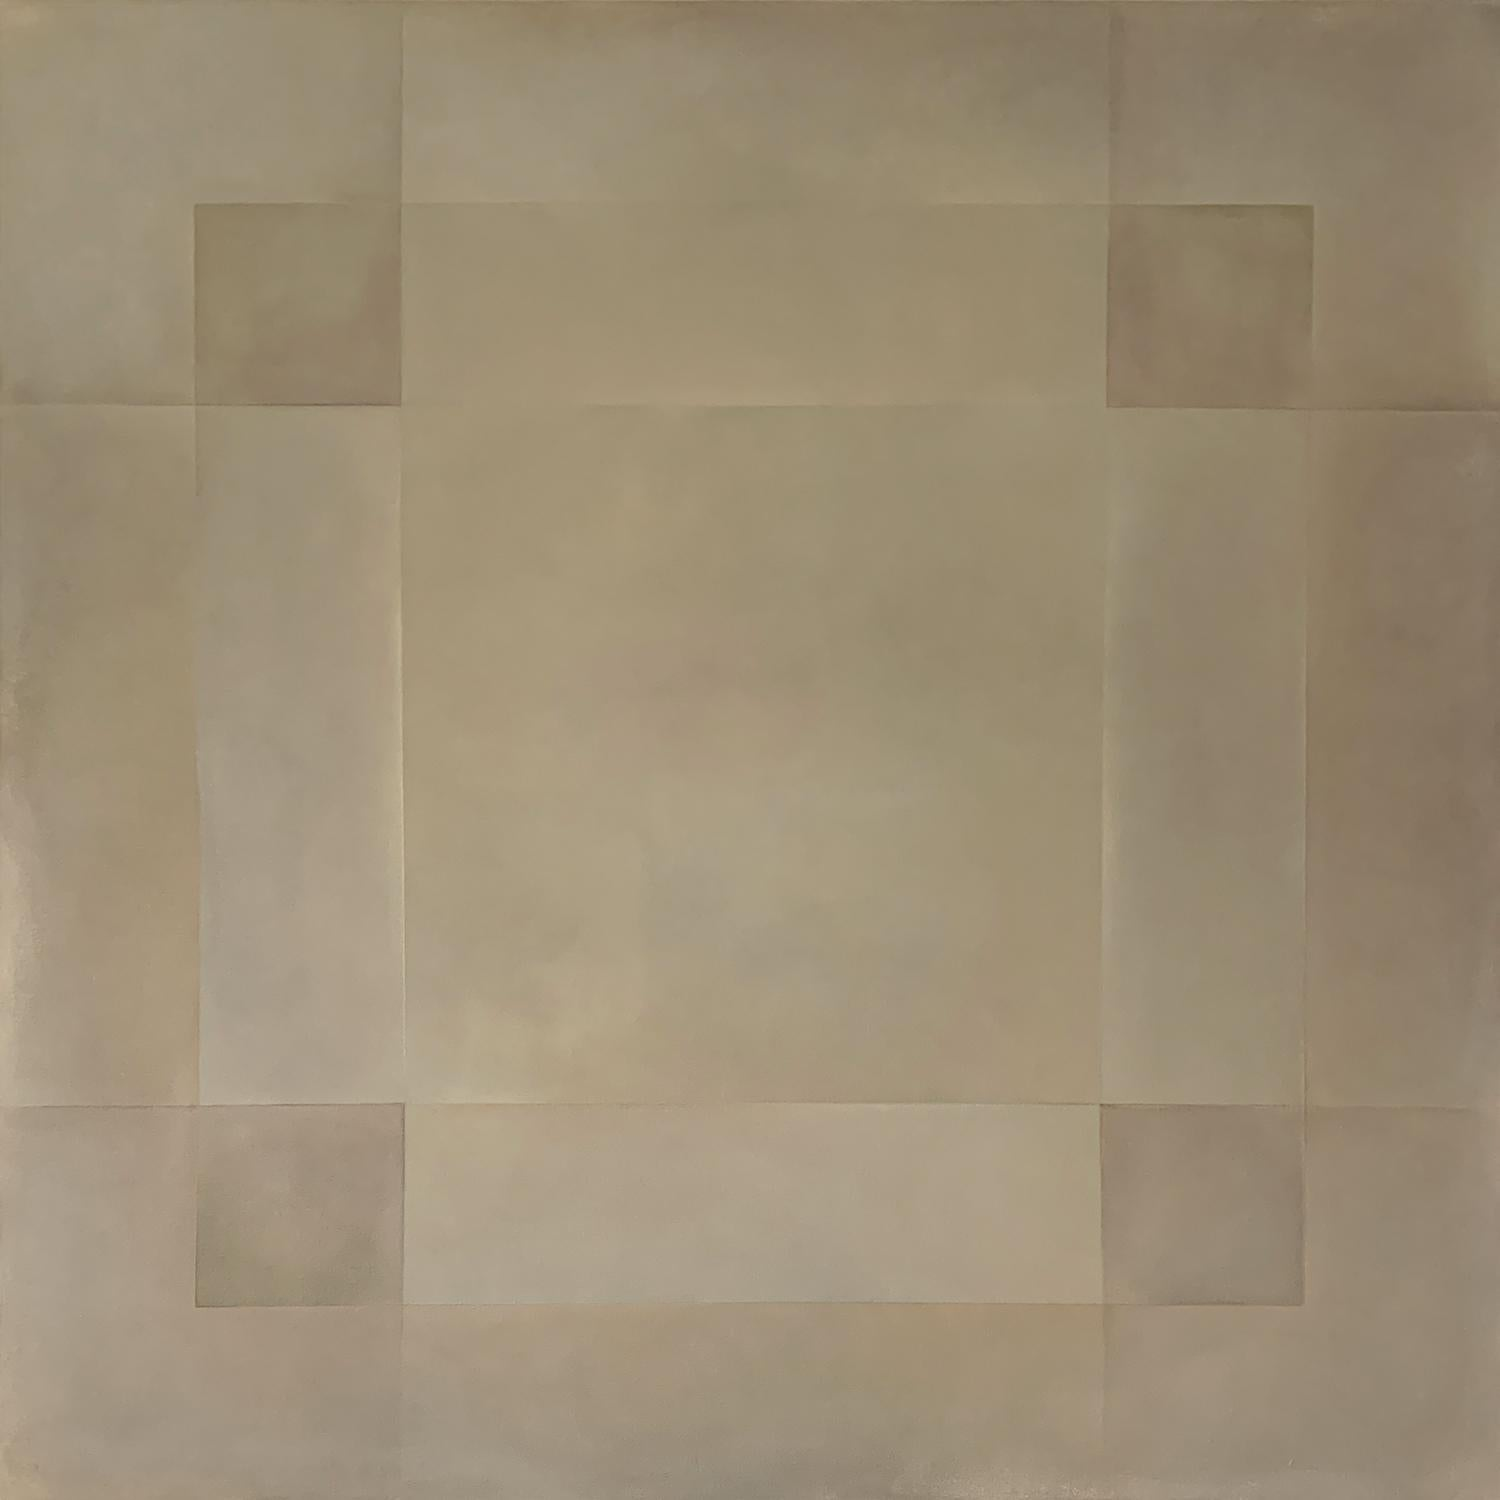 """""""Reactions XXVII"""" - Contemporary Geometric Abstract Paintings - Agnes Martin"""